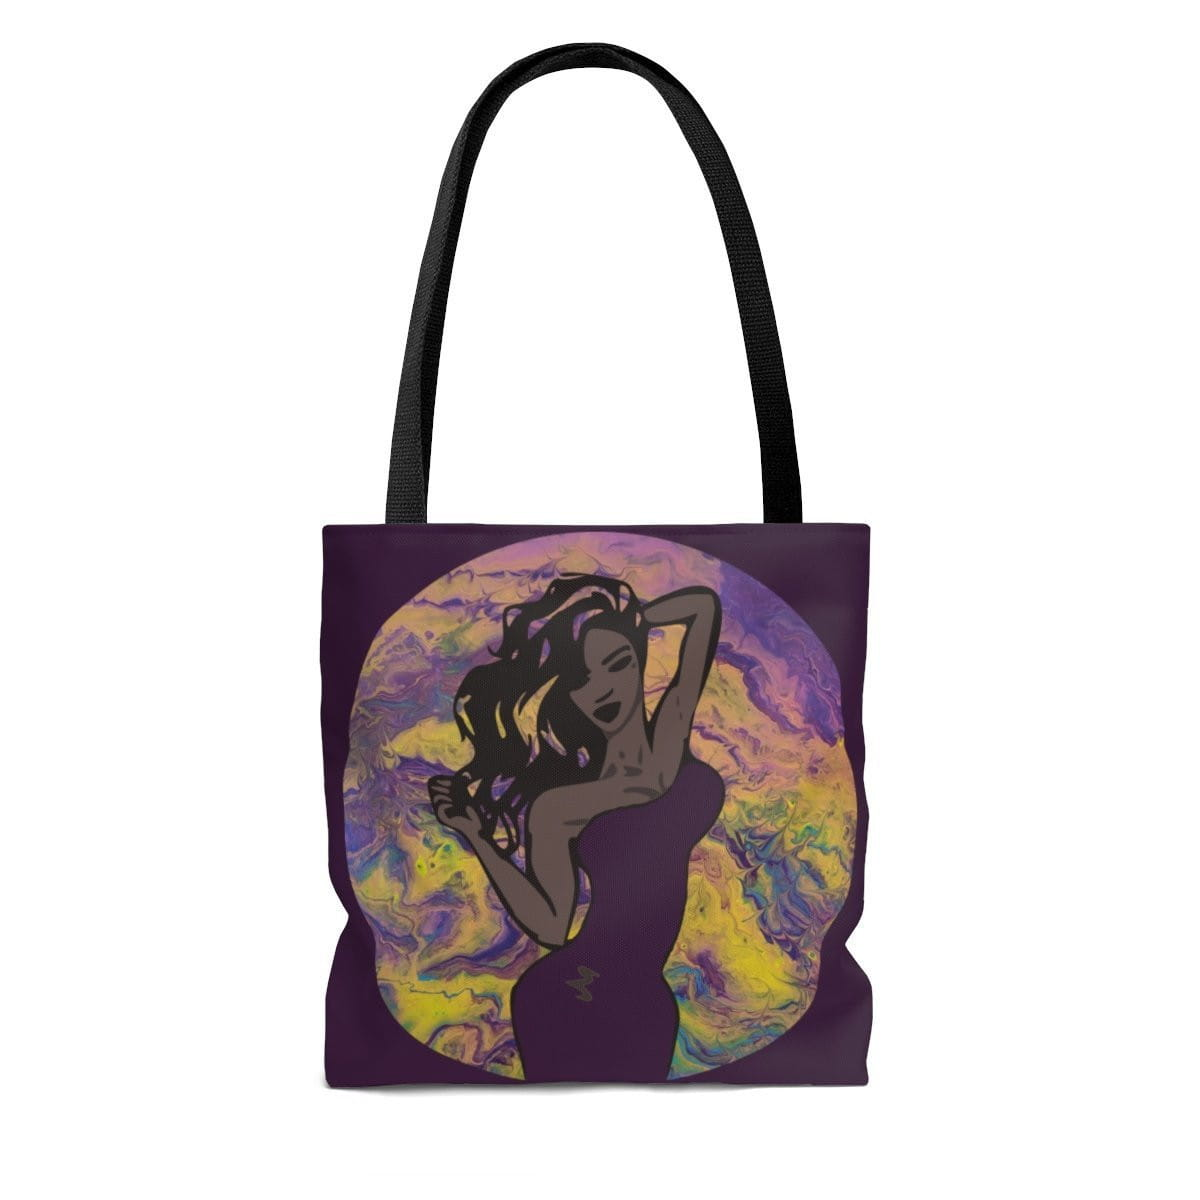 Celestial Woman - Tote Bag - Fiercely Fem